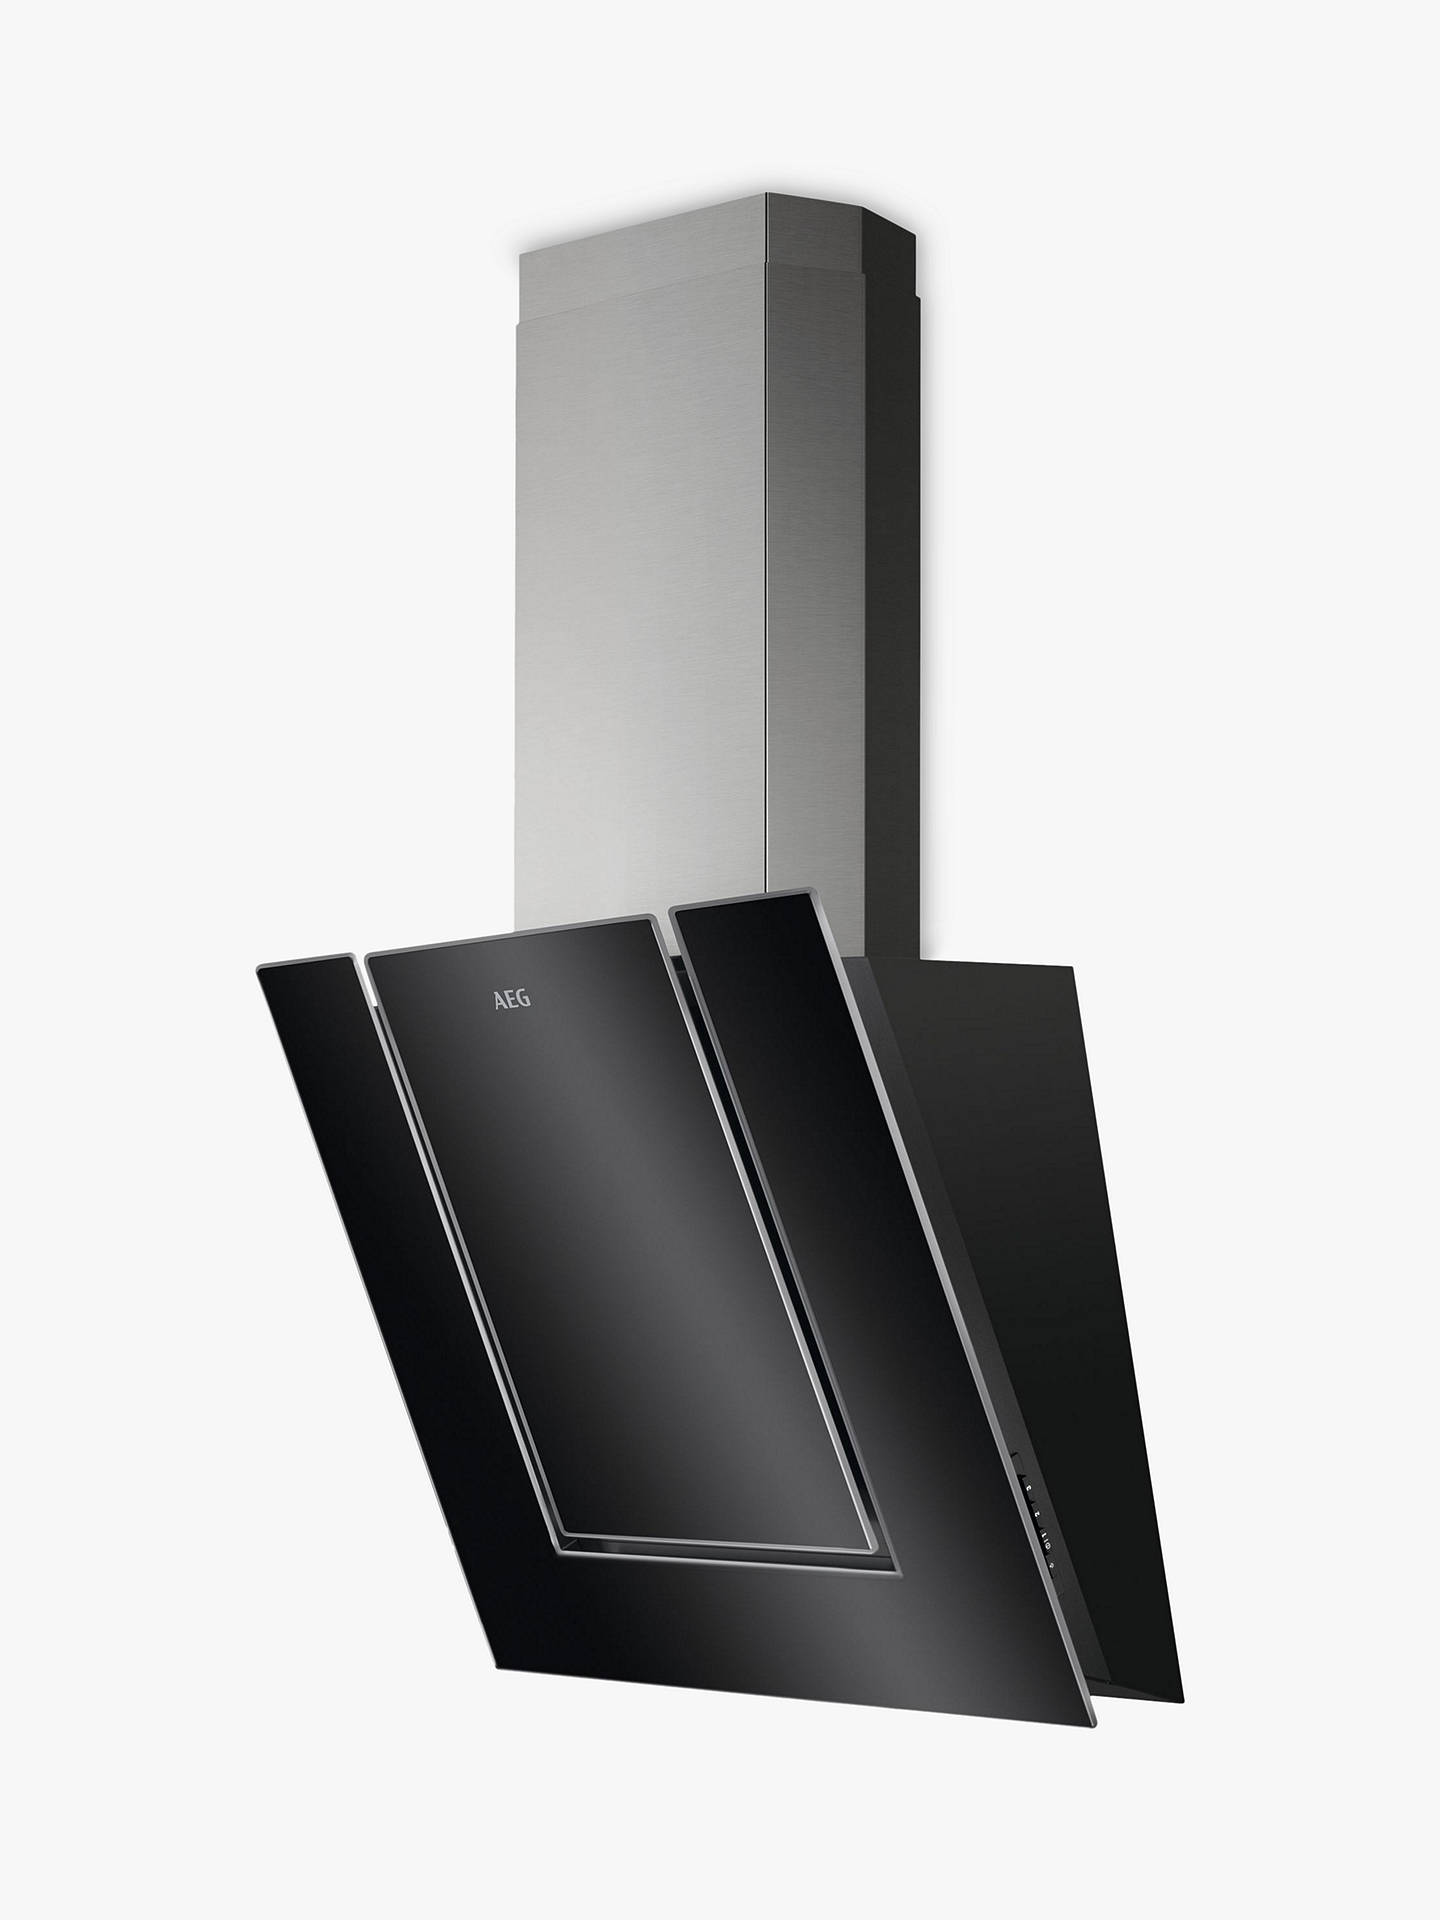 BuyAEG DVB4550B Angled Chimney Cooker Hood, Black Glass Online at johnlewis.com